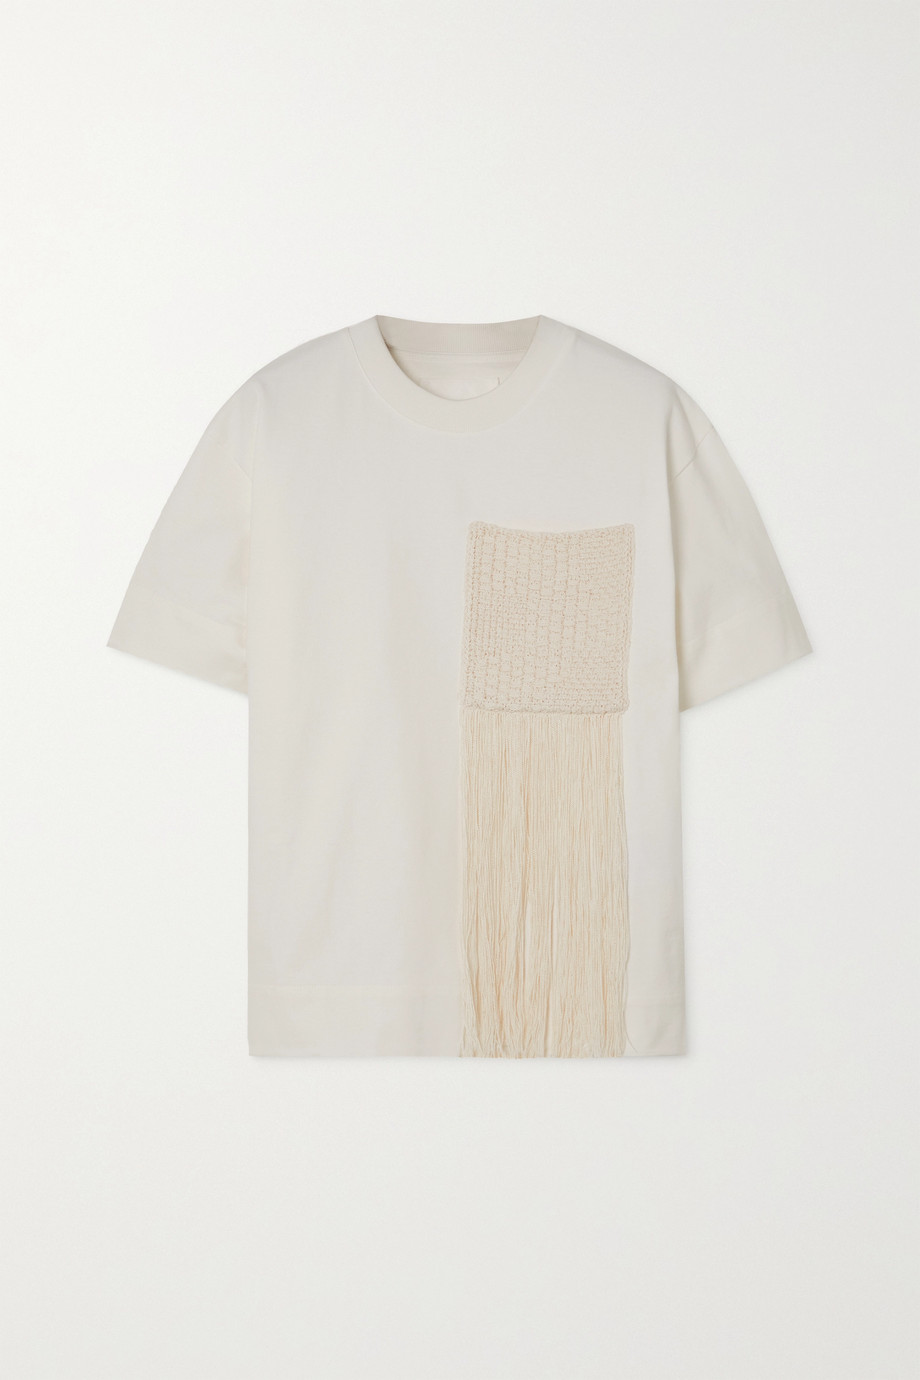 JIL SANDER Fringed crochet-paneled cotton-jersey T-shirt